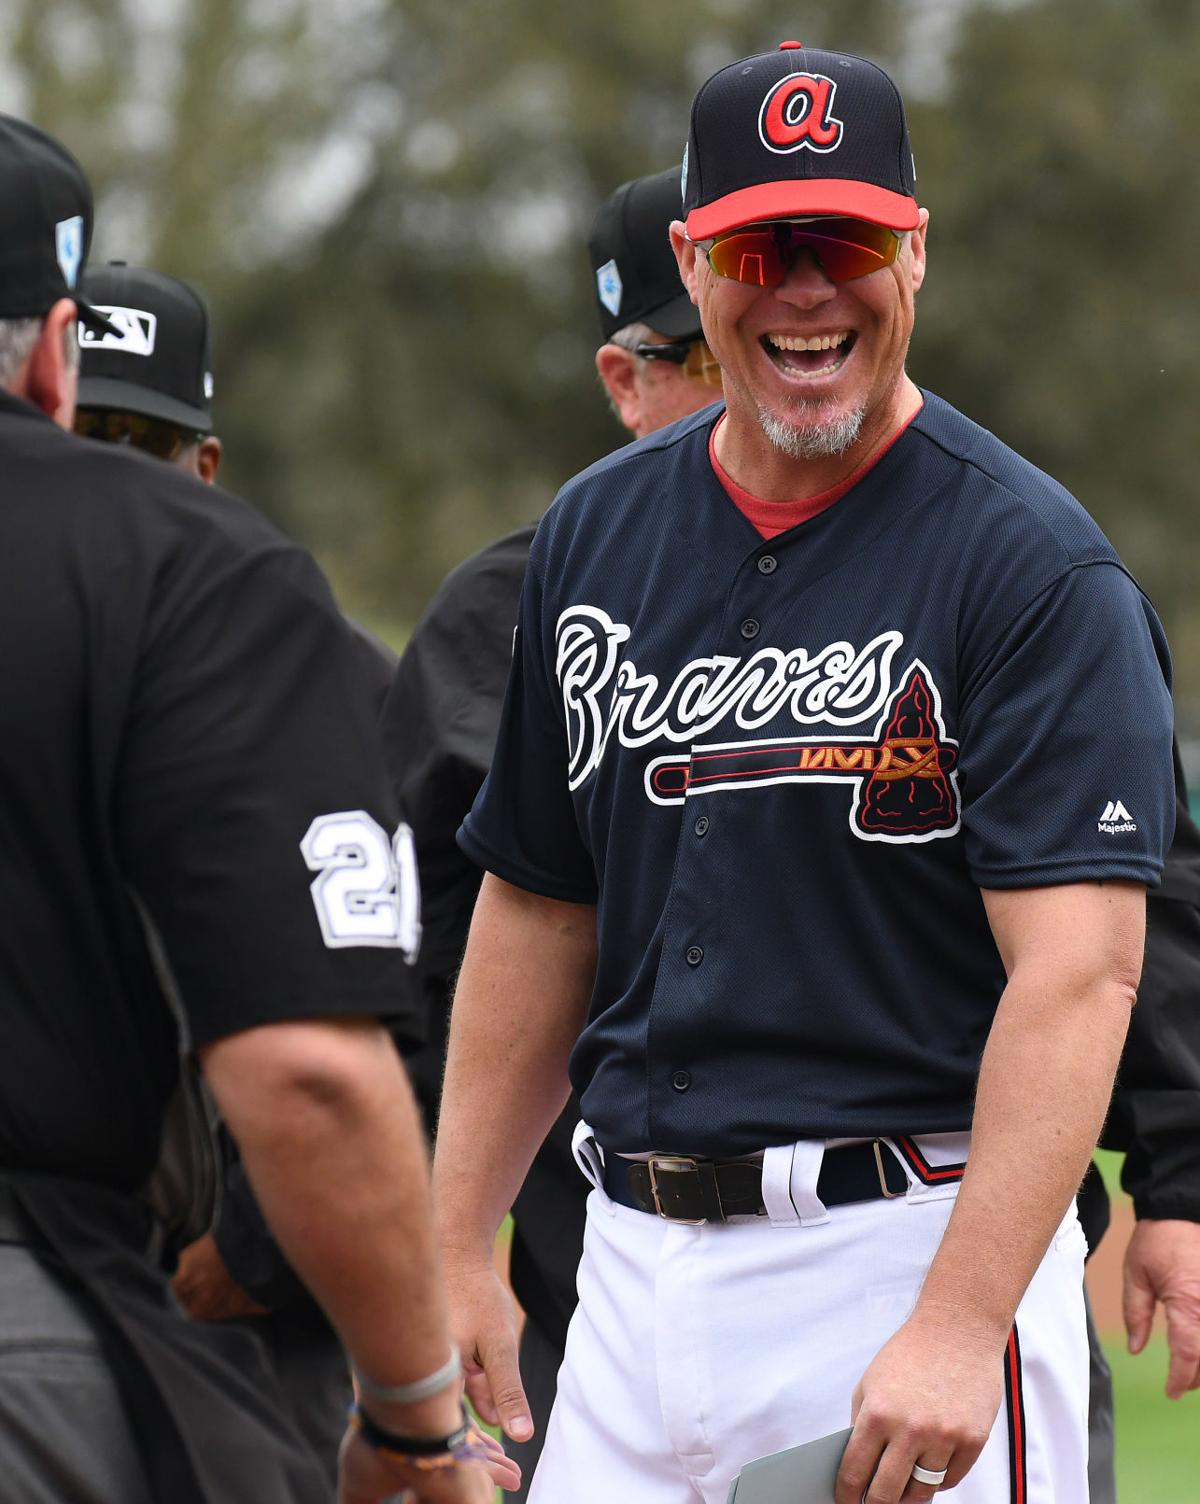 big sale a2f06 276b0 PHOTOS: Atlanta Braves in 2019 Spring Training | Curated ...